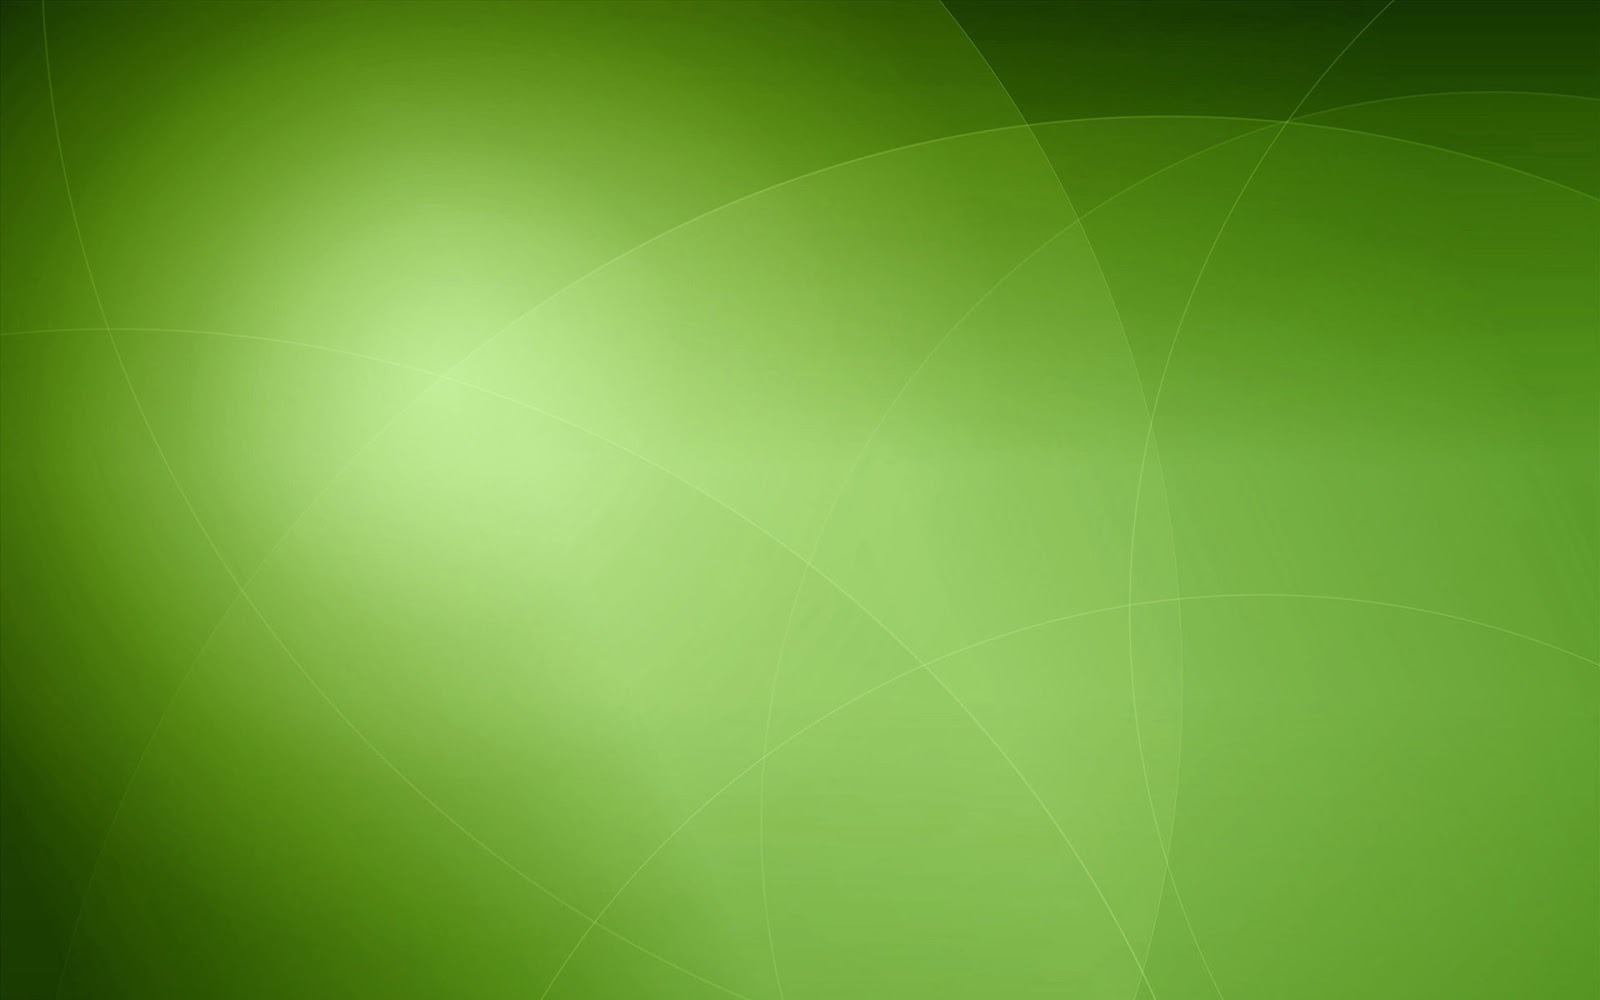 Green Linux Desktop Wallpapers Collections